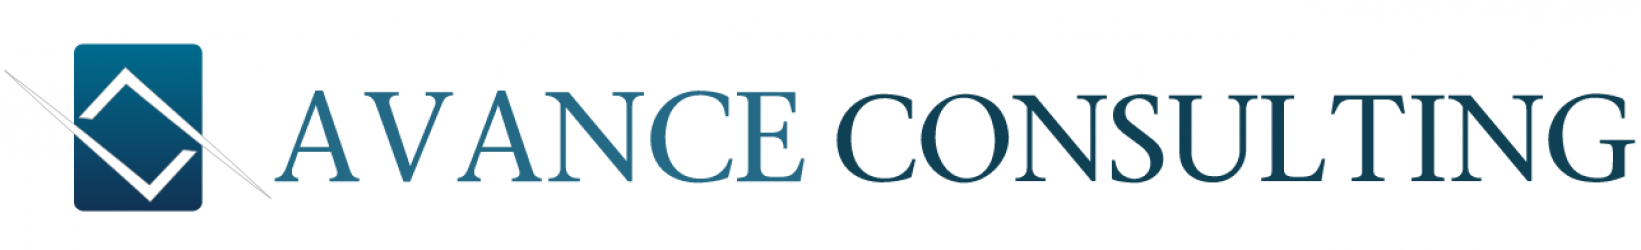 Avance Consulting Services's logo